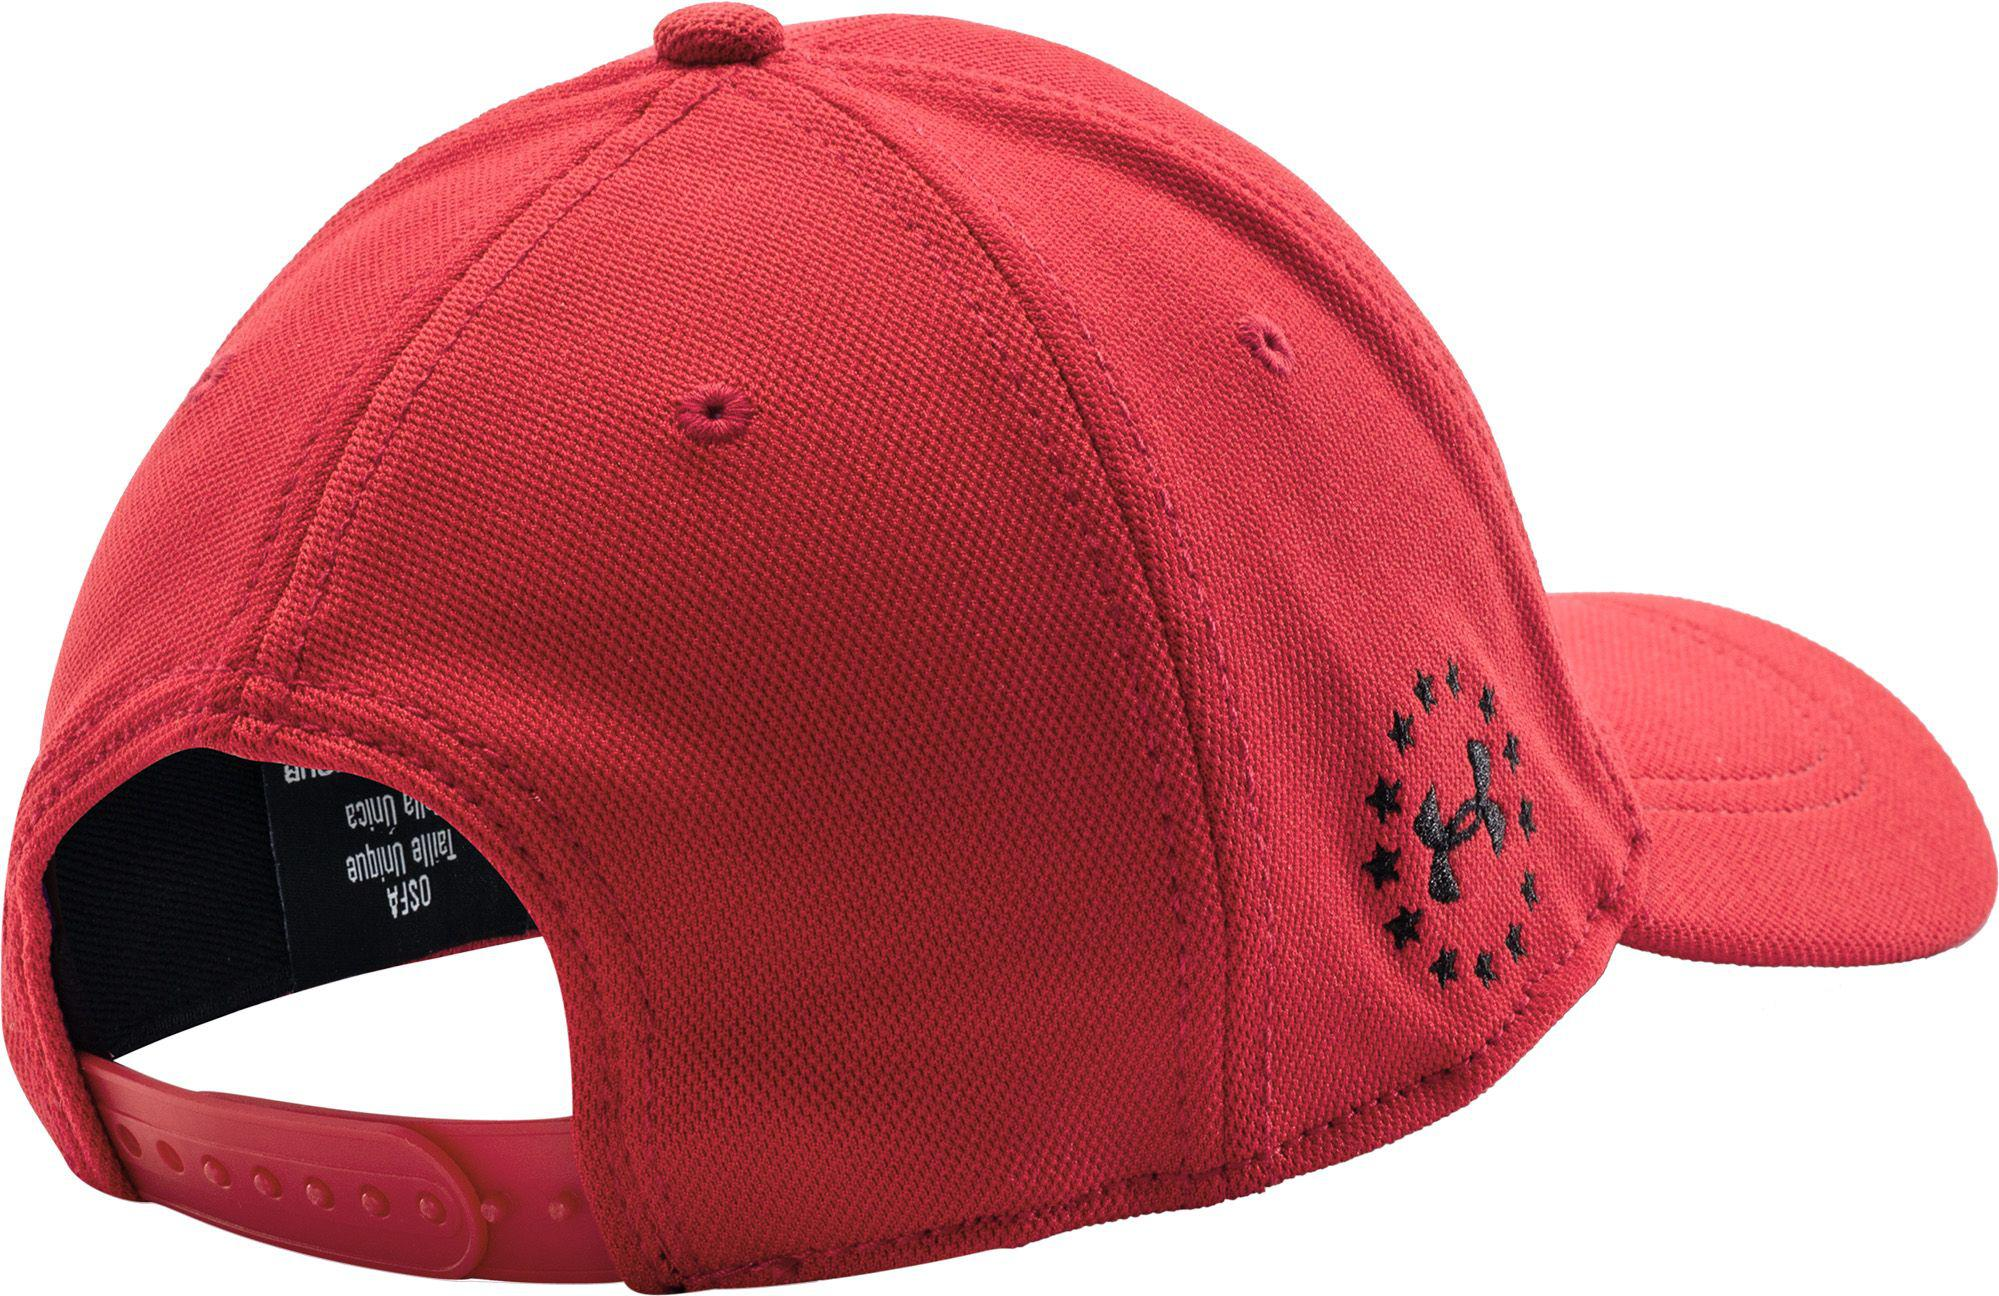 Lyst - Under Armour Wounded Warrior Project Snapback Hat in Red for Men 2b40dad91ef